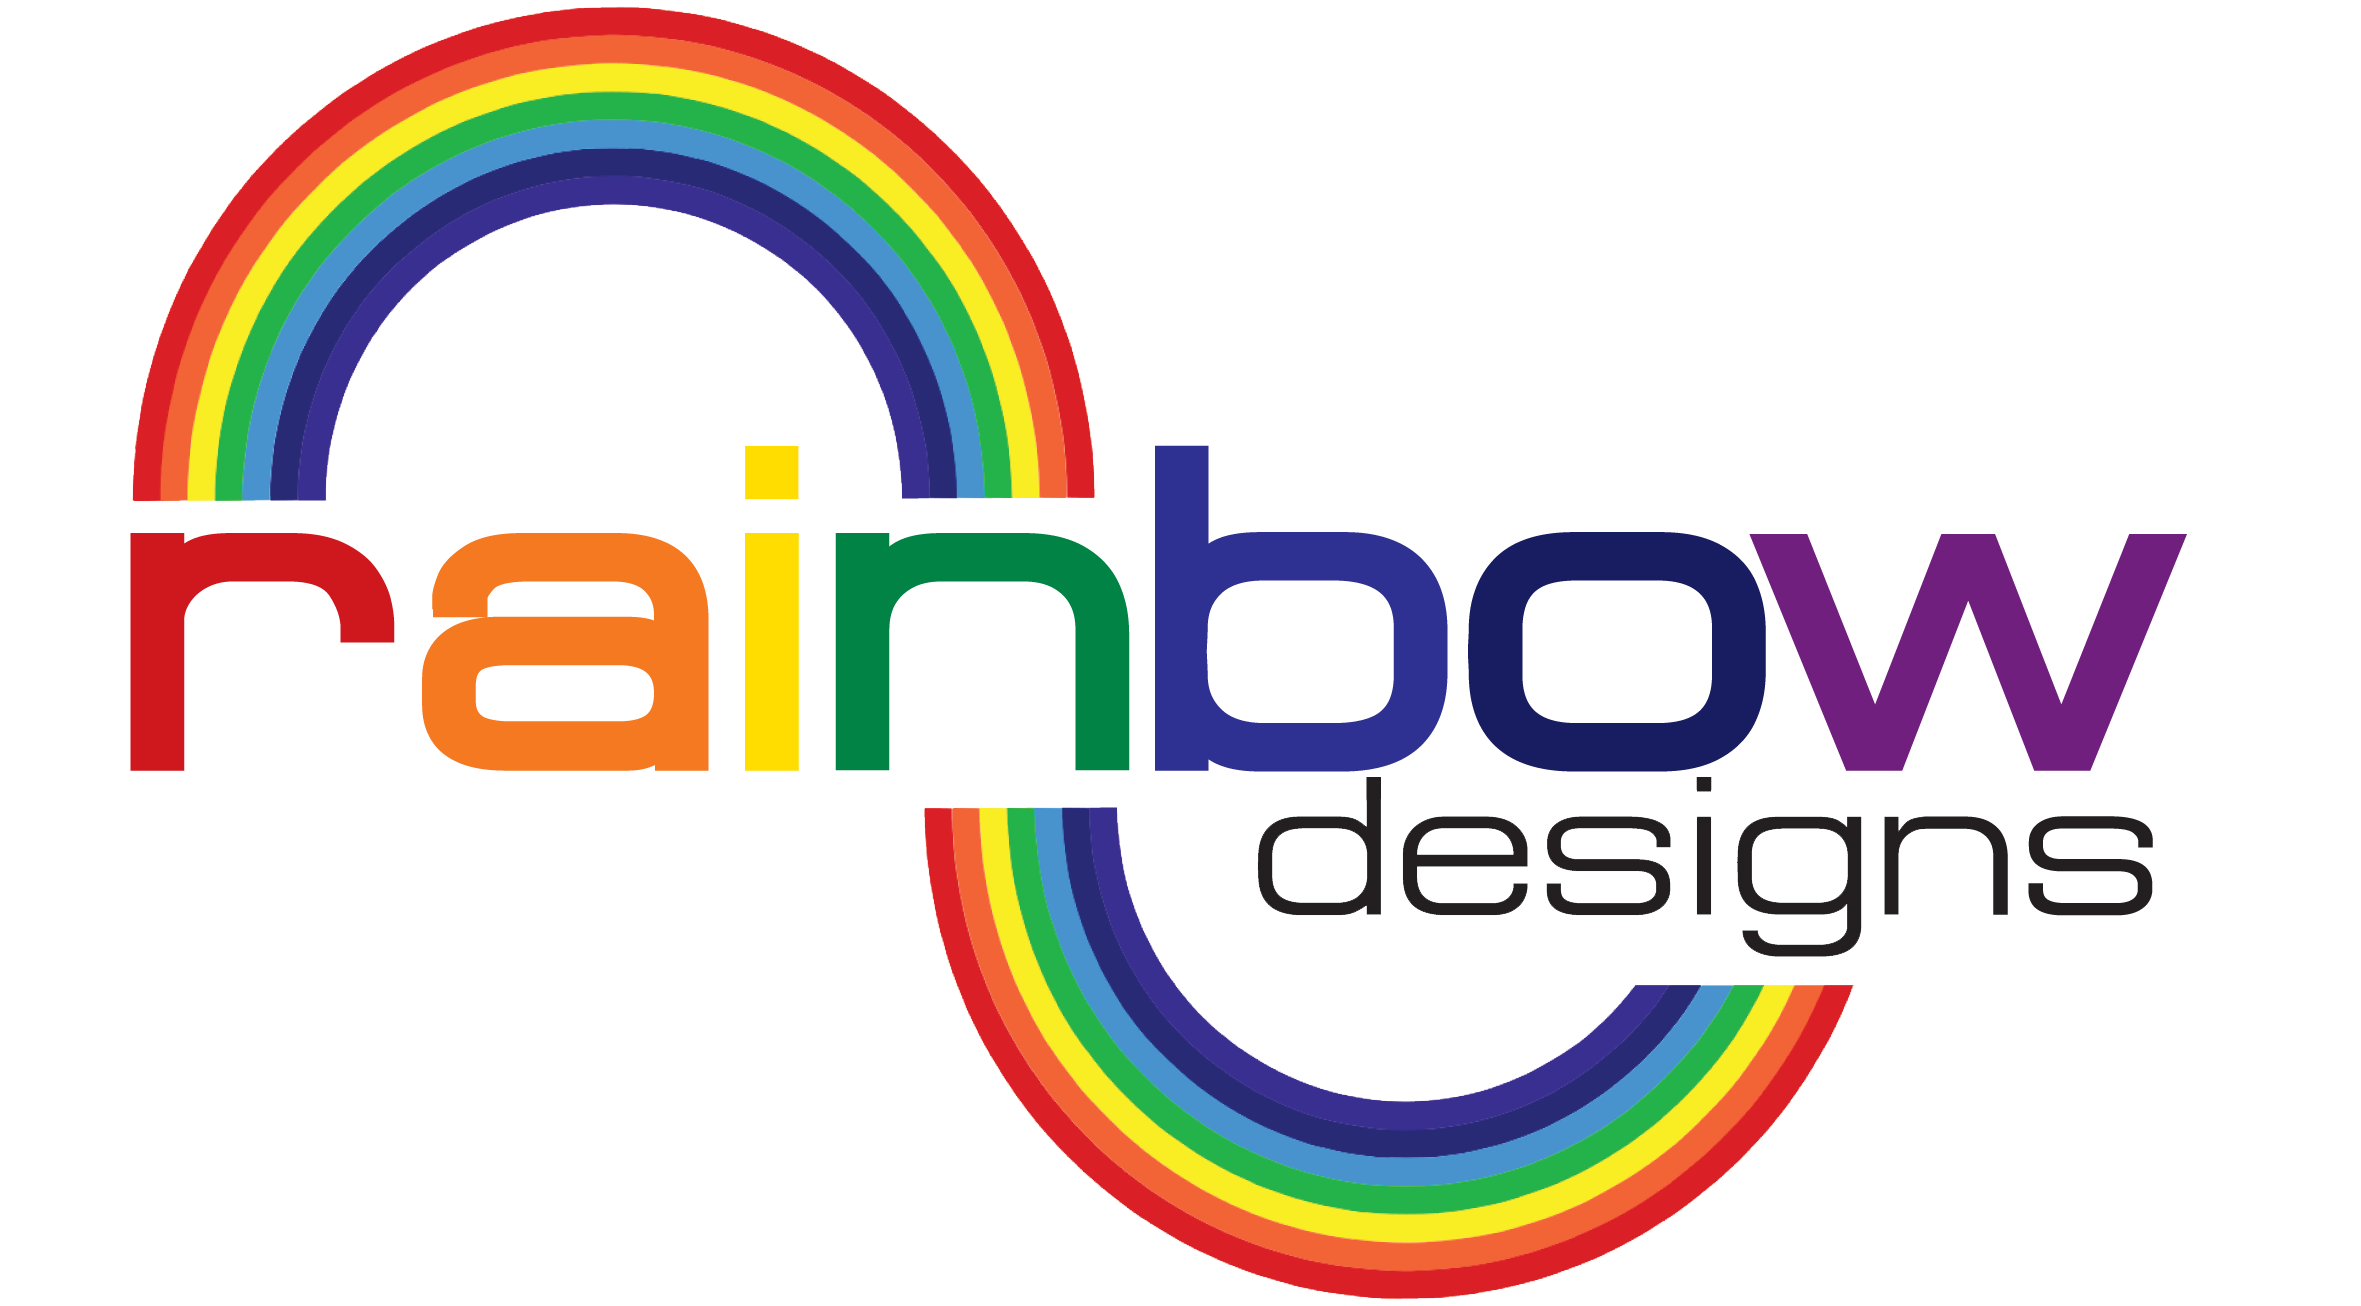 Rainbow badge png. Free photo logo graphic